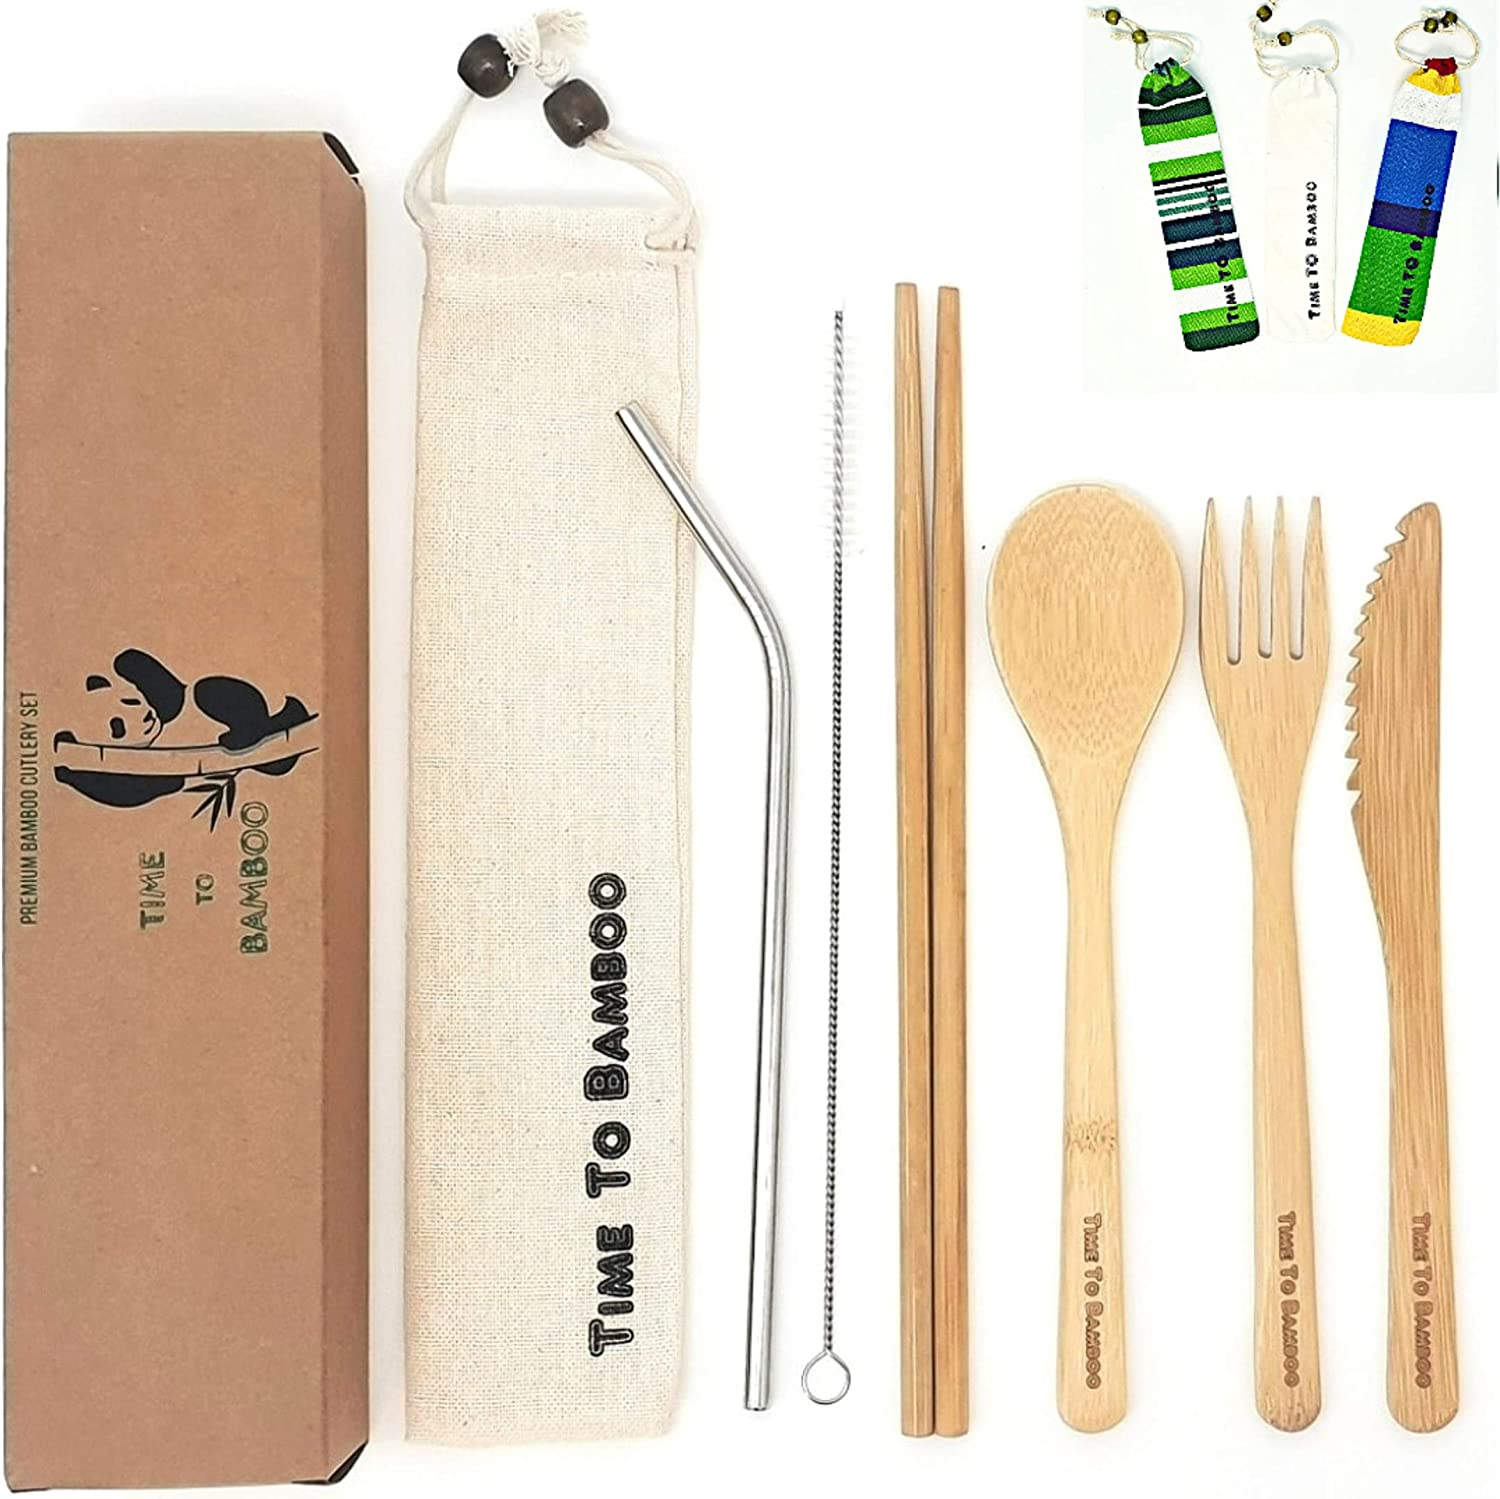 Organic Cutlery Set with Travel Pouch Time To Bamboo/™ Knife Eco-Friendly Bamboo Cutlery Set  Reusable Travel Cutlery Flatware Set Spoon and Straw  Wooden Cutlery Set Green Fork